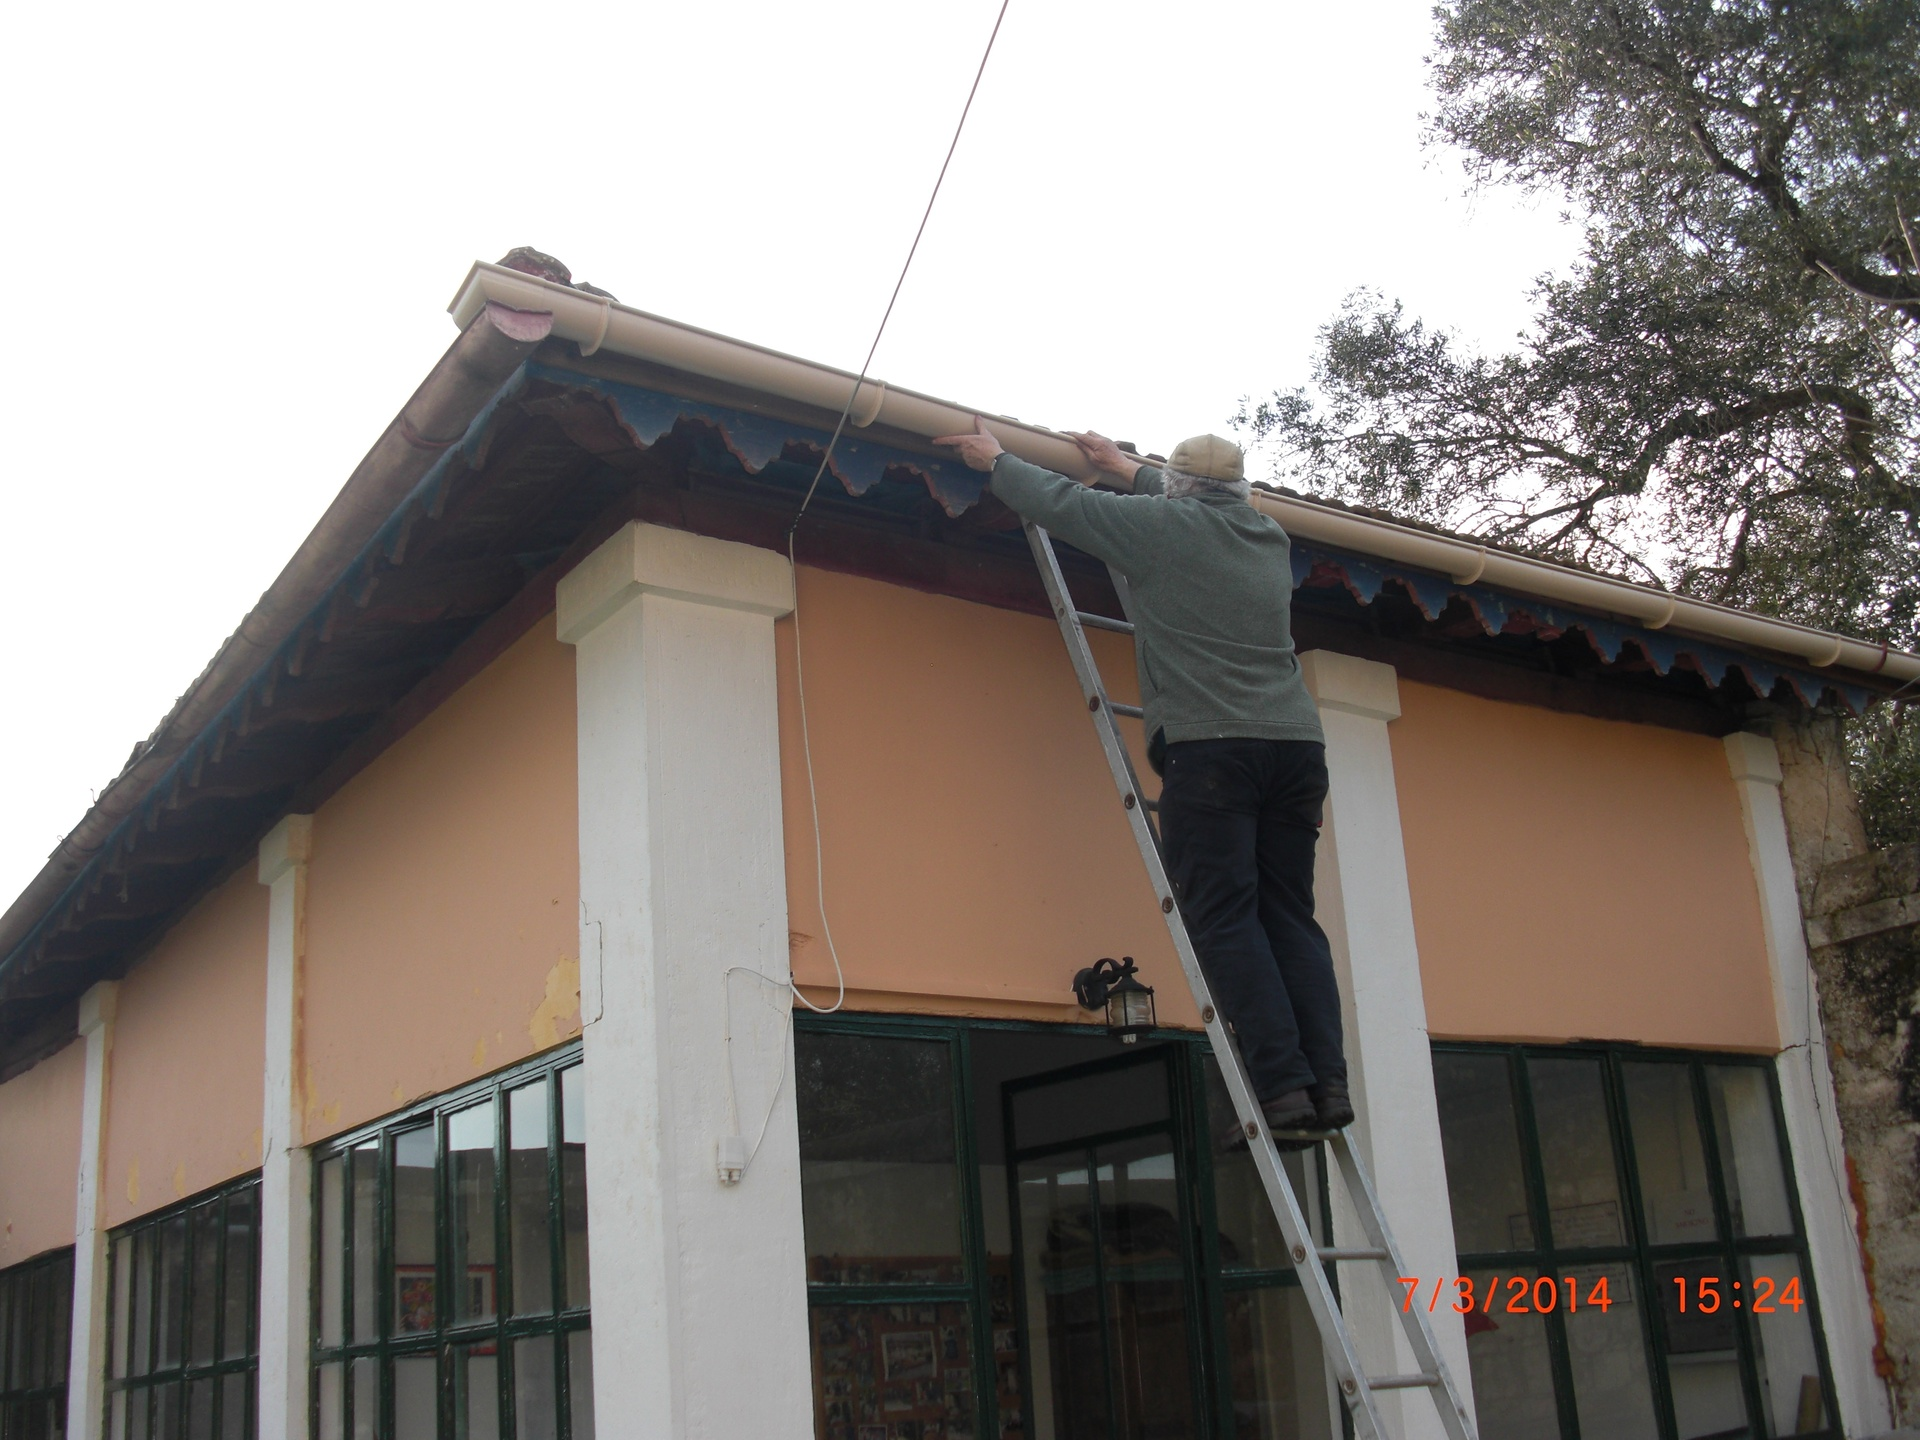 Rod repairing the guttering